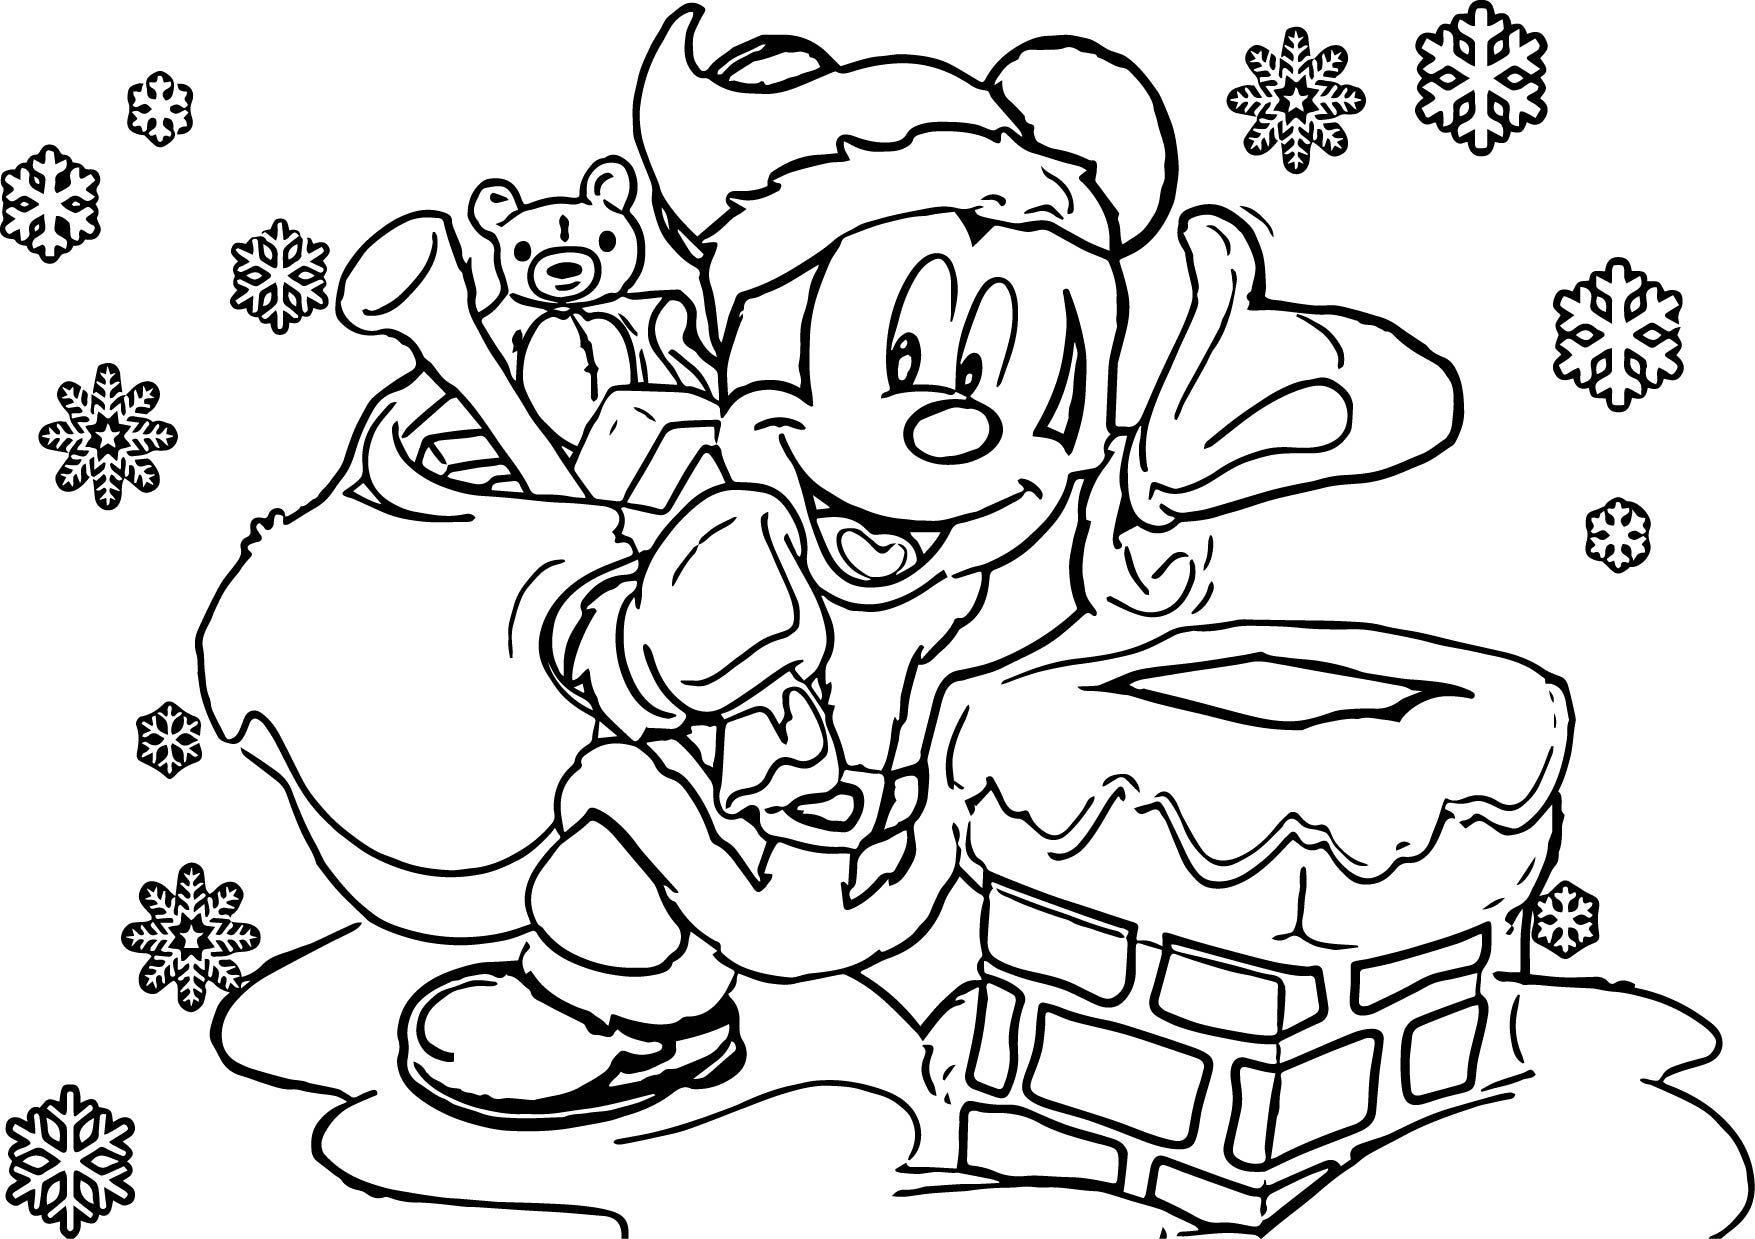 Christmas Images Coloring Pages With New Disney Princess Gallery Printable